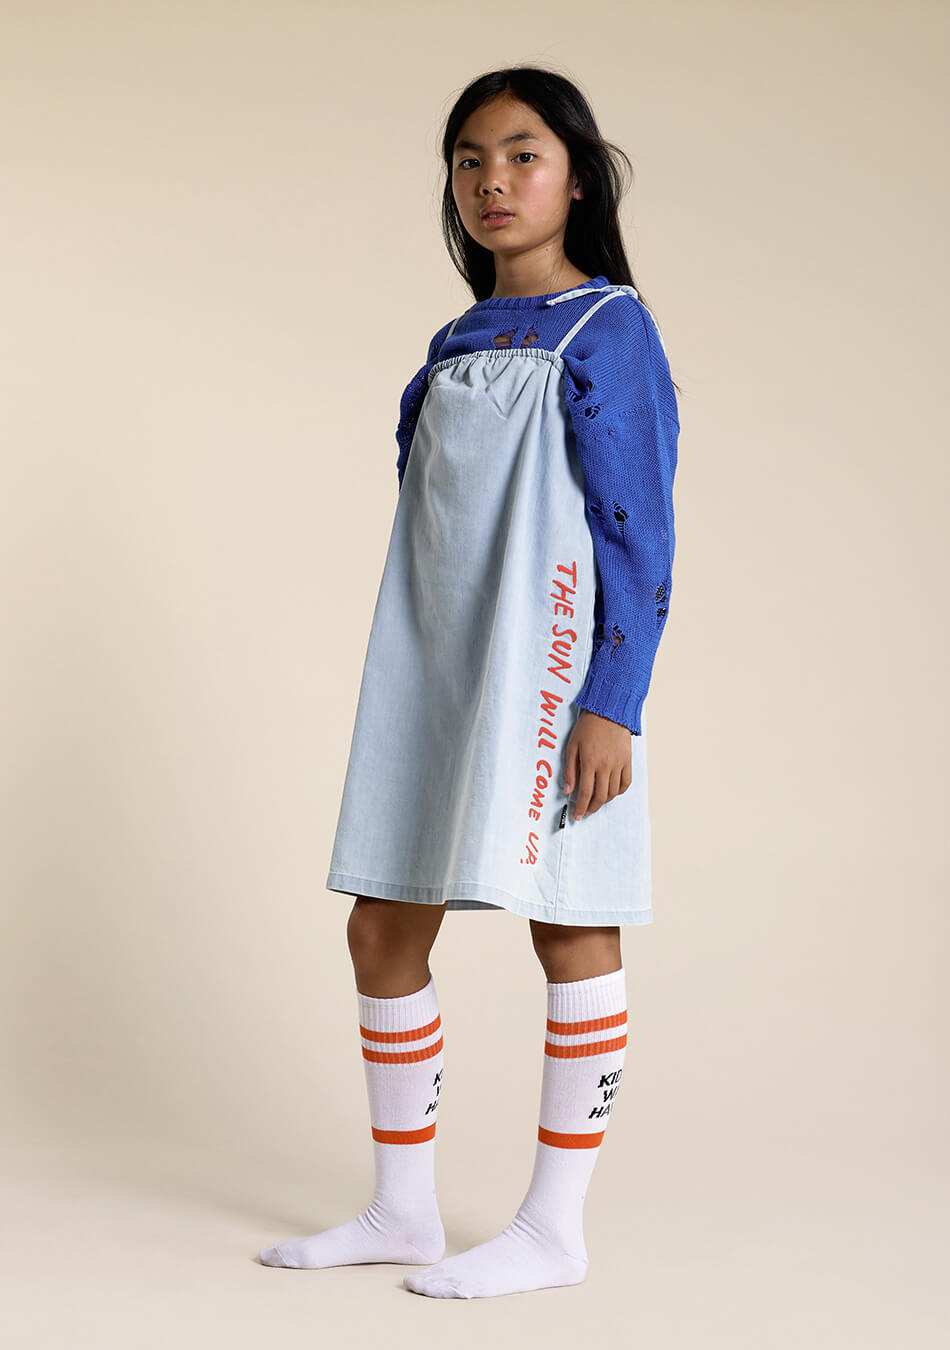 denim kids dress